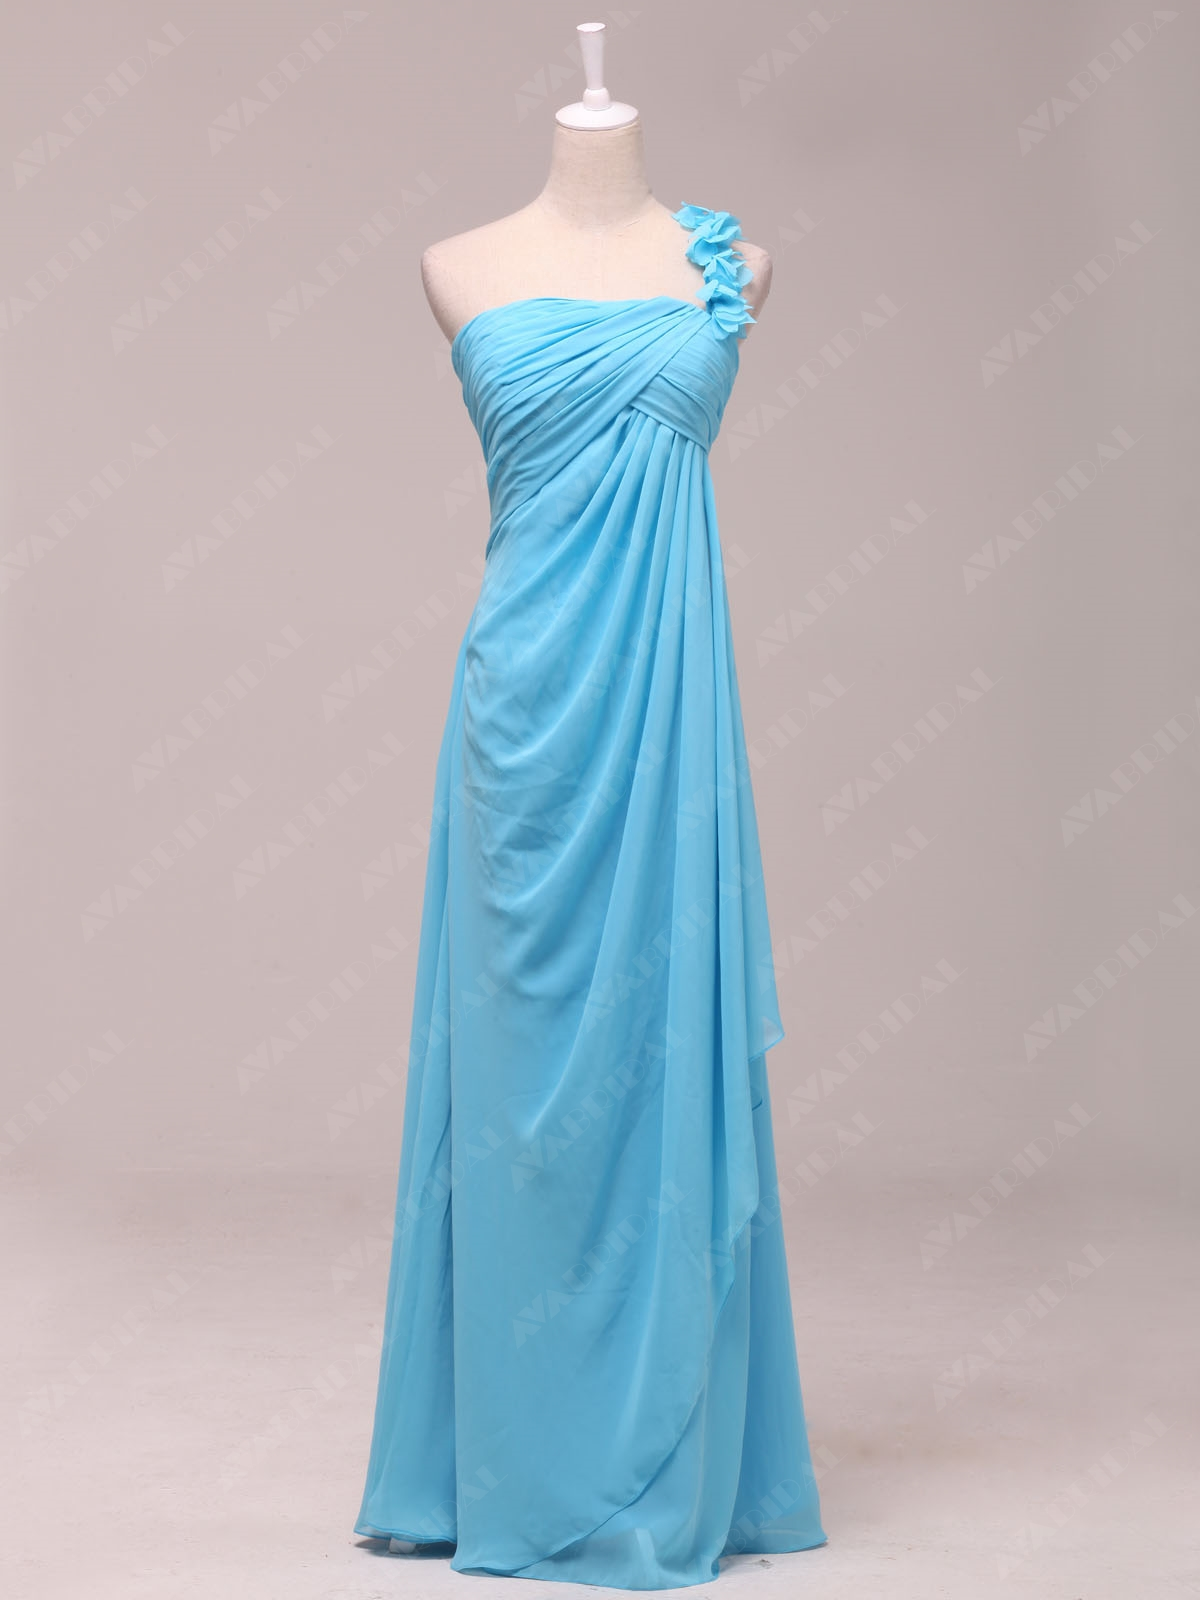 Chic Sheath Chiffon Bridesmaid Dress B462-Front